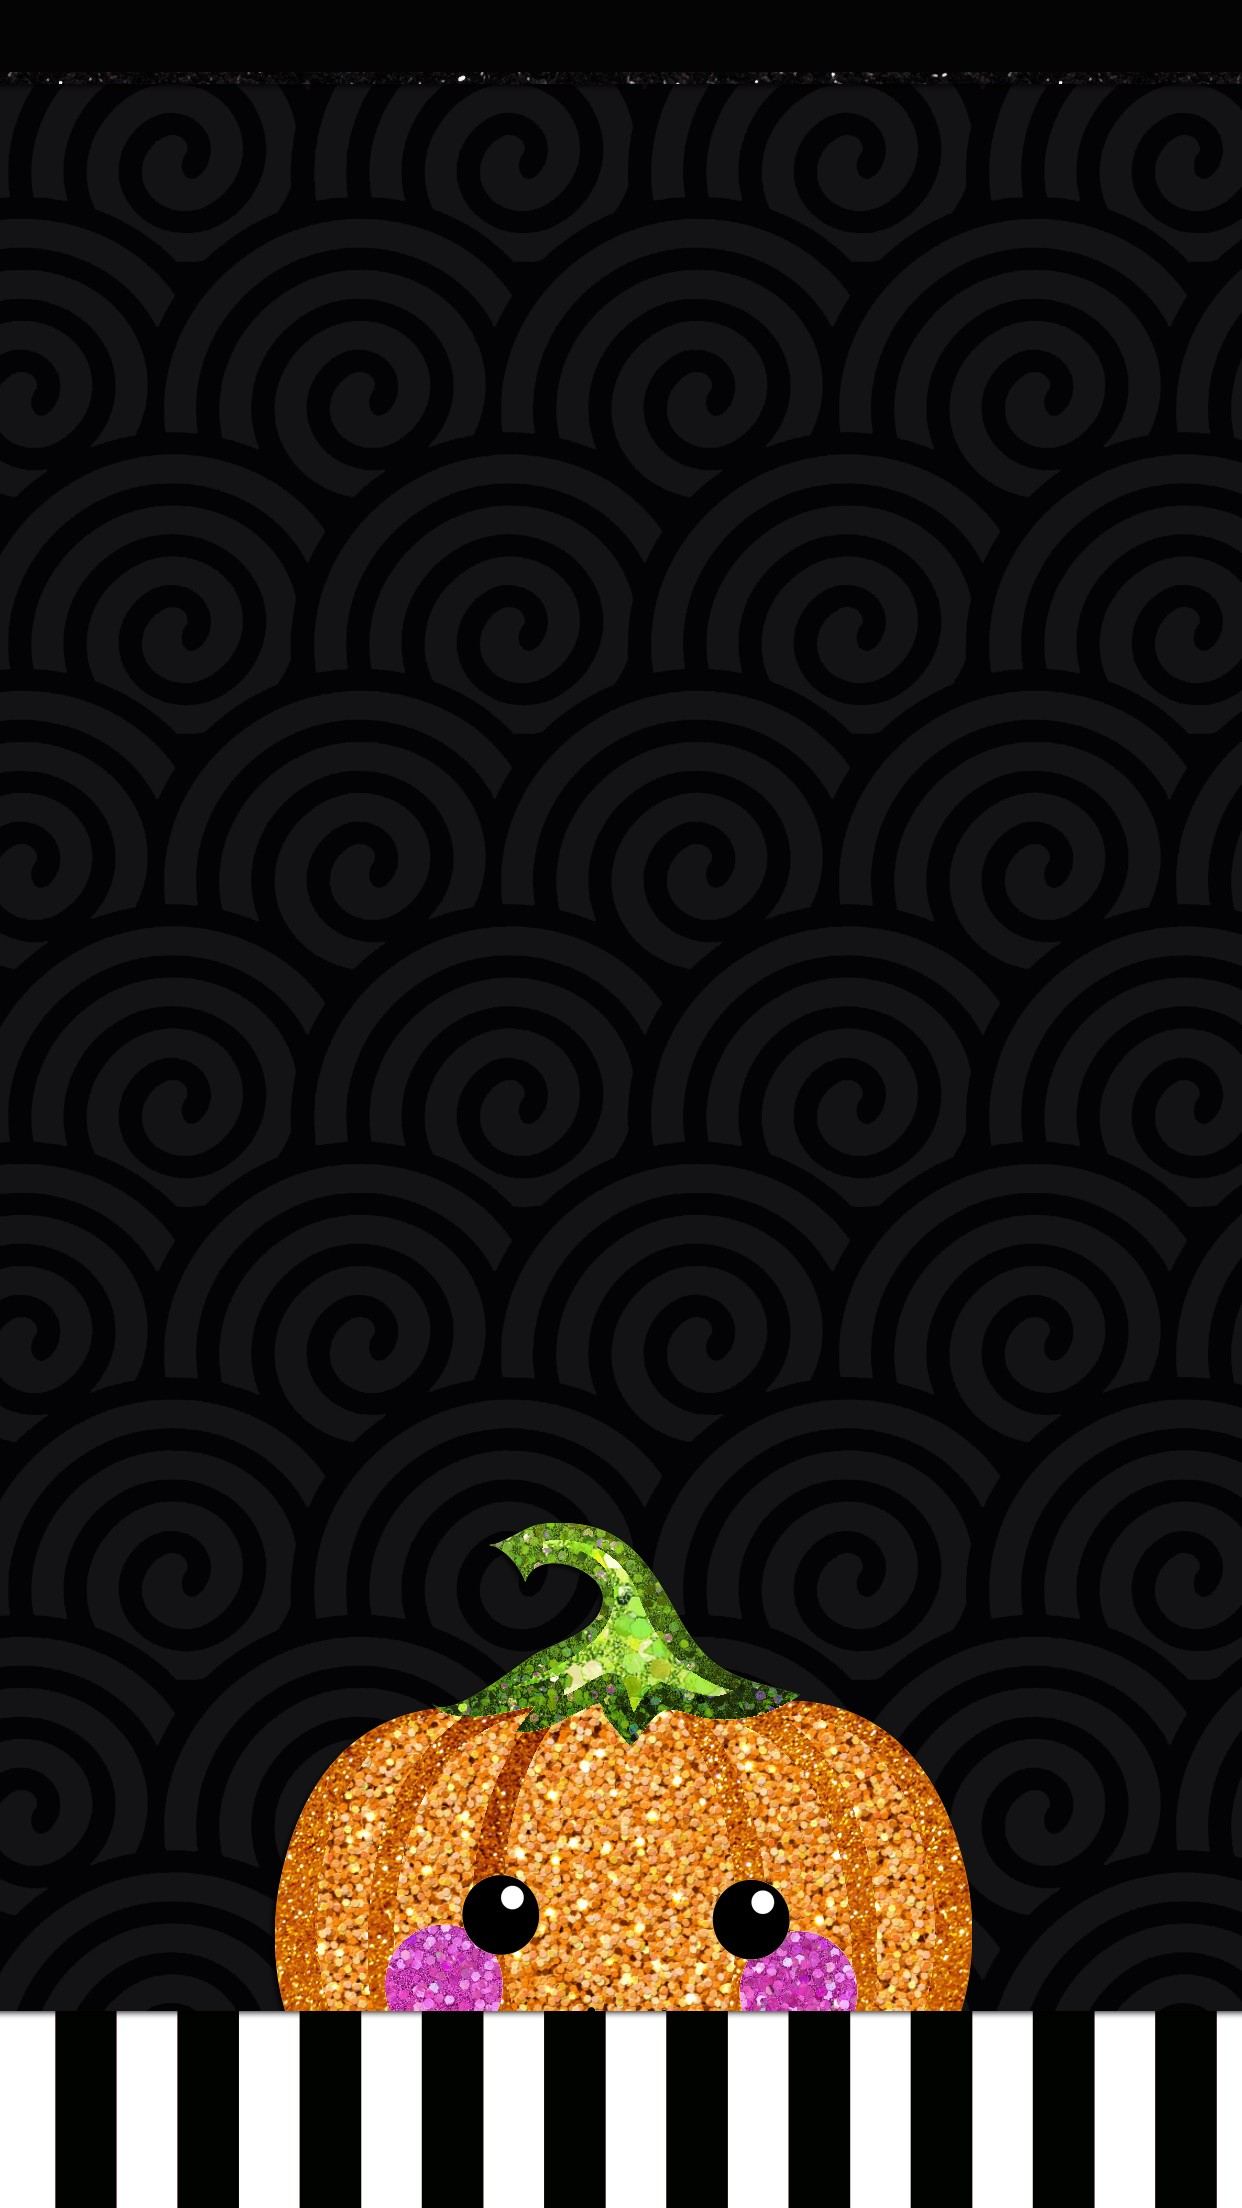 Halloween Wallpaper Tumblr.Halloween Background Tumblr Download Free Cool High Resolution